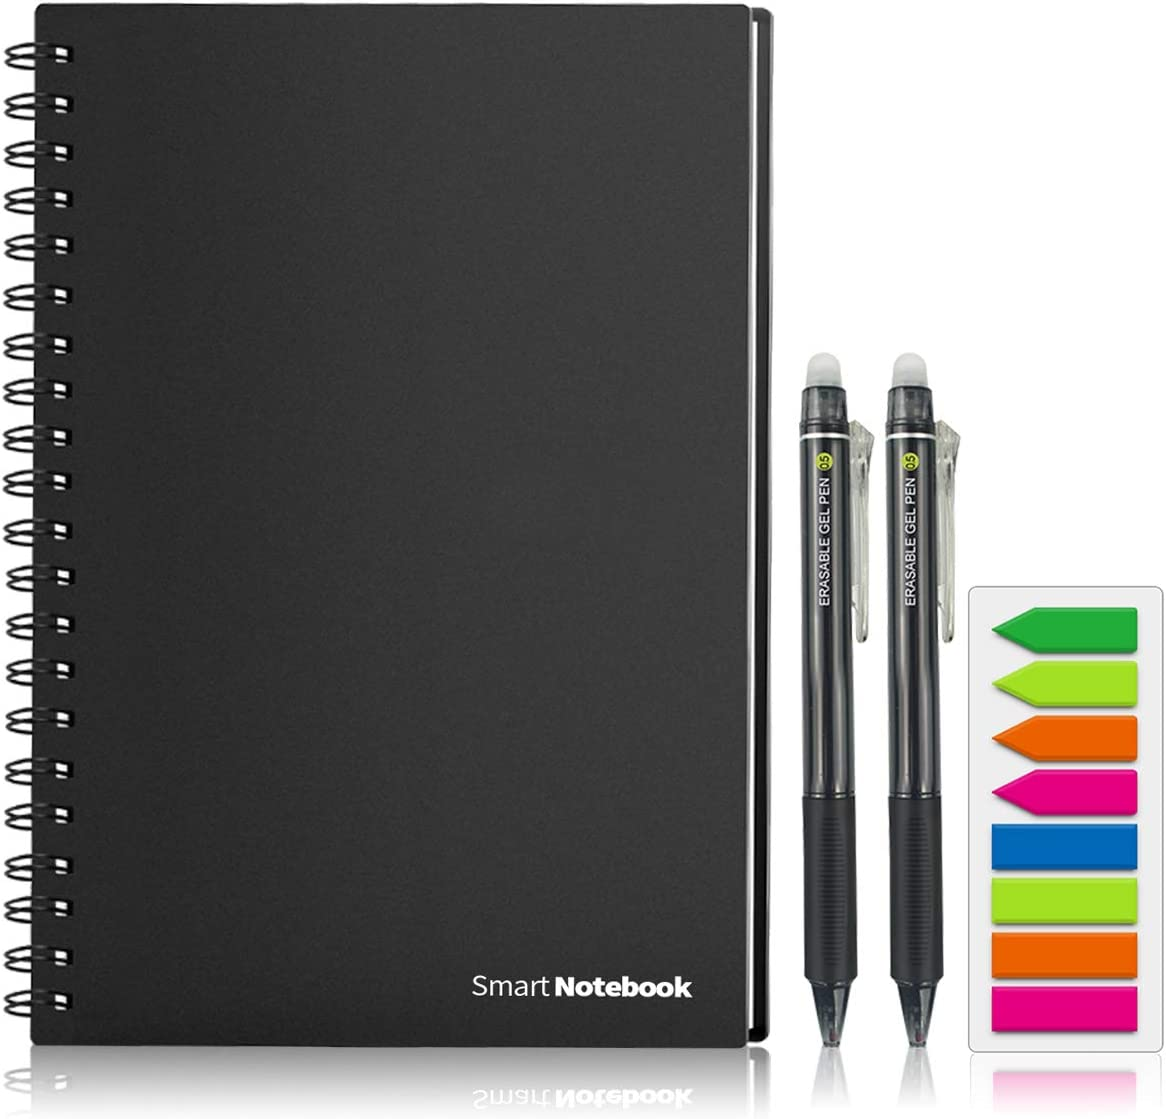 GUYUCOM Smart Reusable Notebook, Letter Size Erasable Wirebound Smart Notebook with Pen Sketch Pads APP Storage (A4)